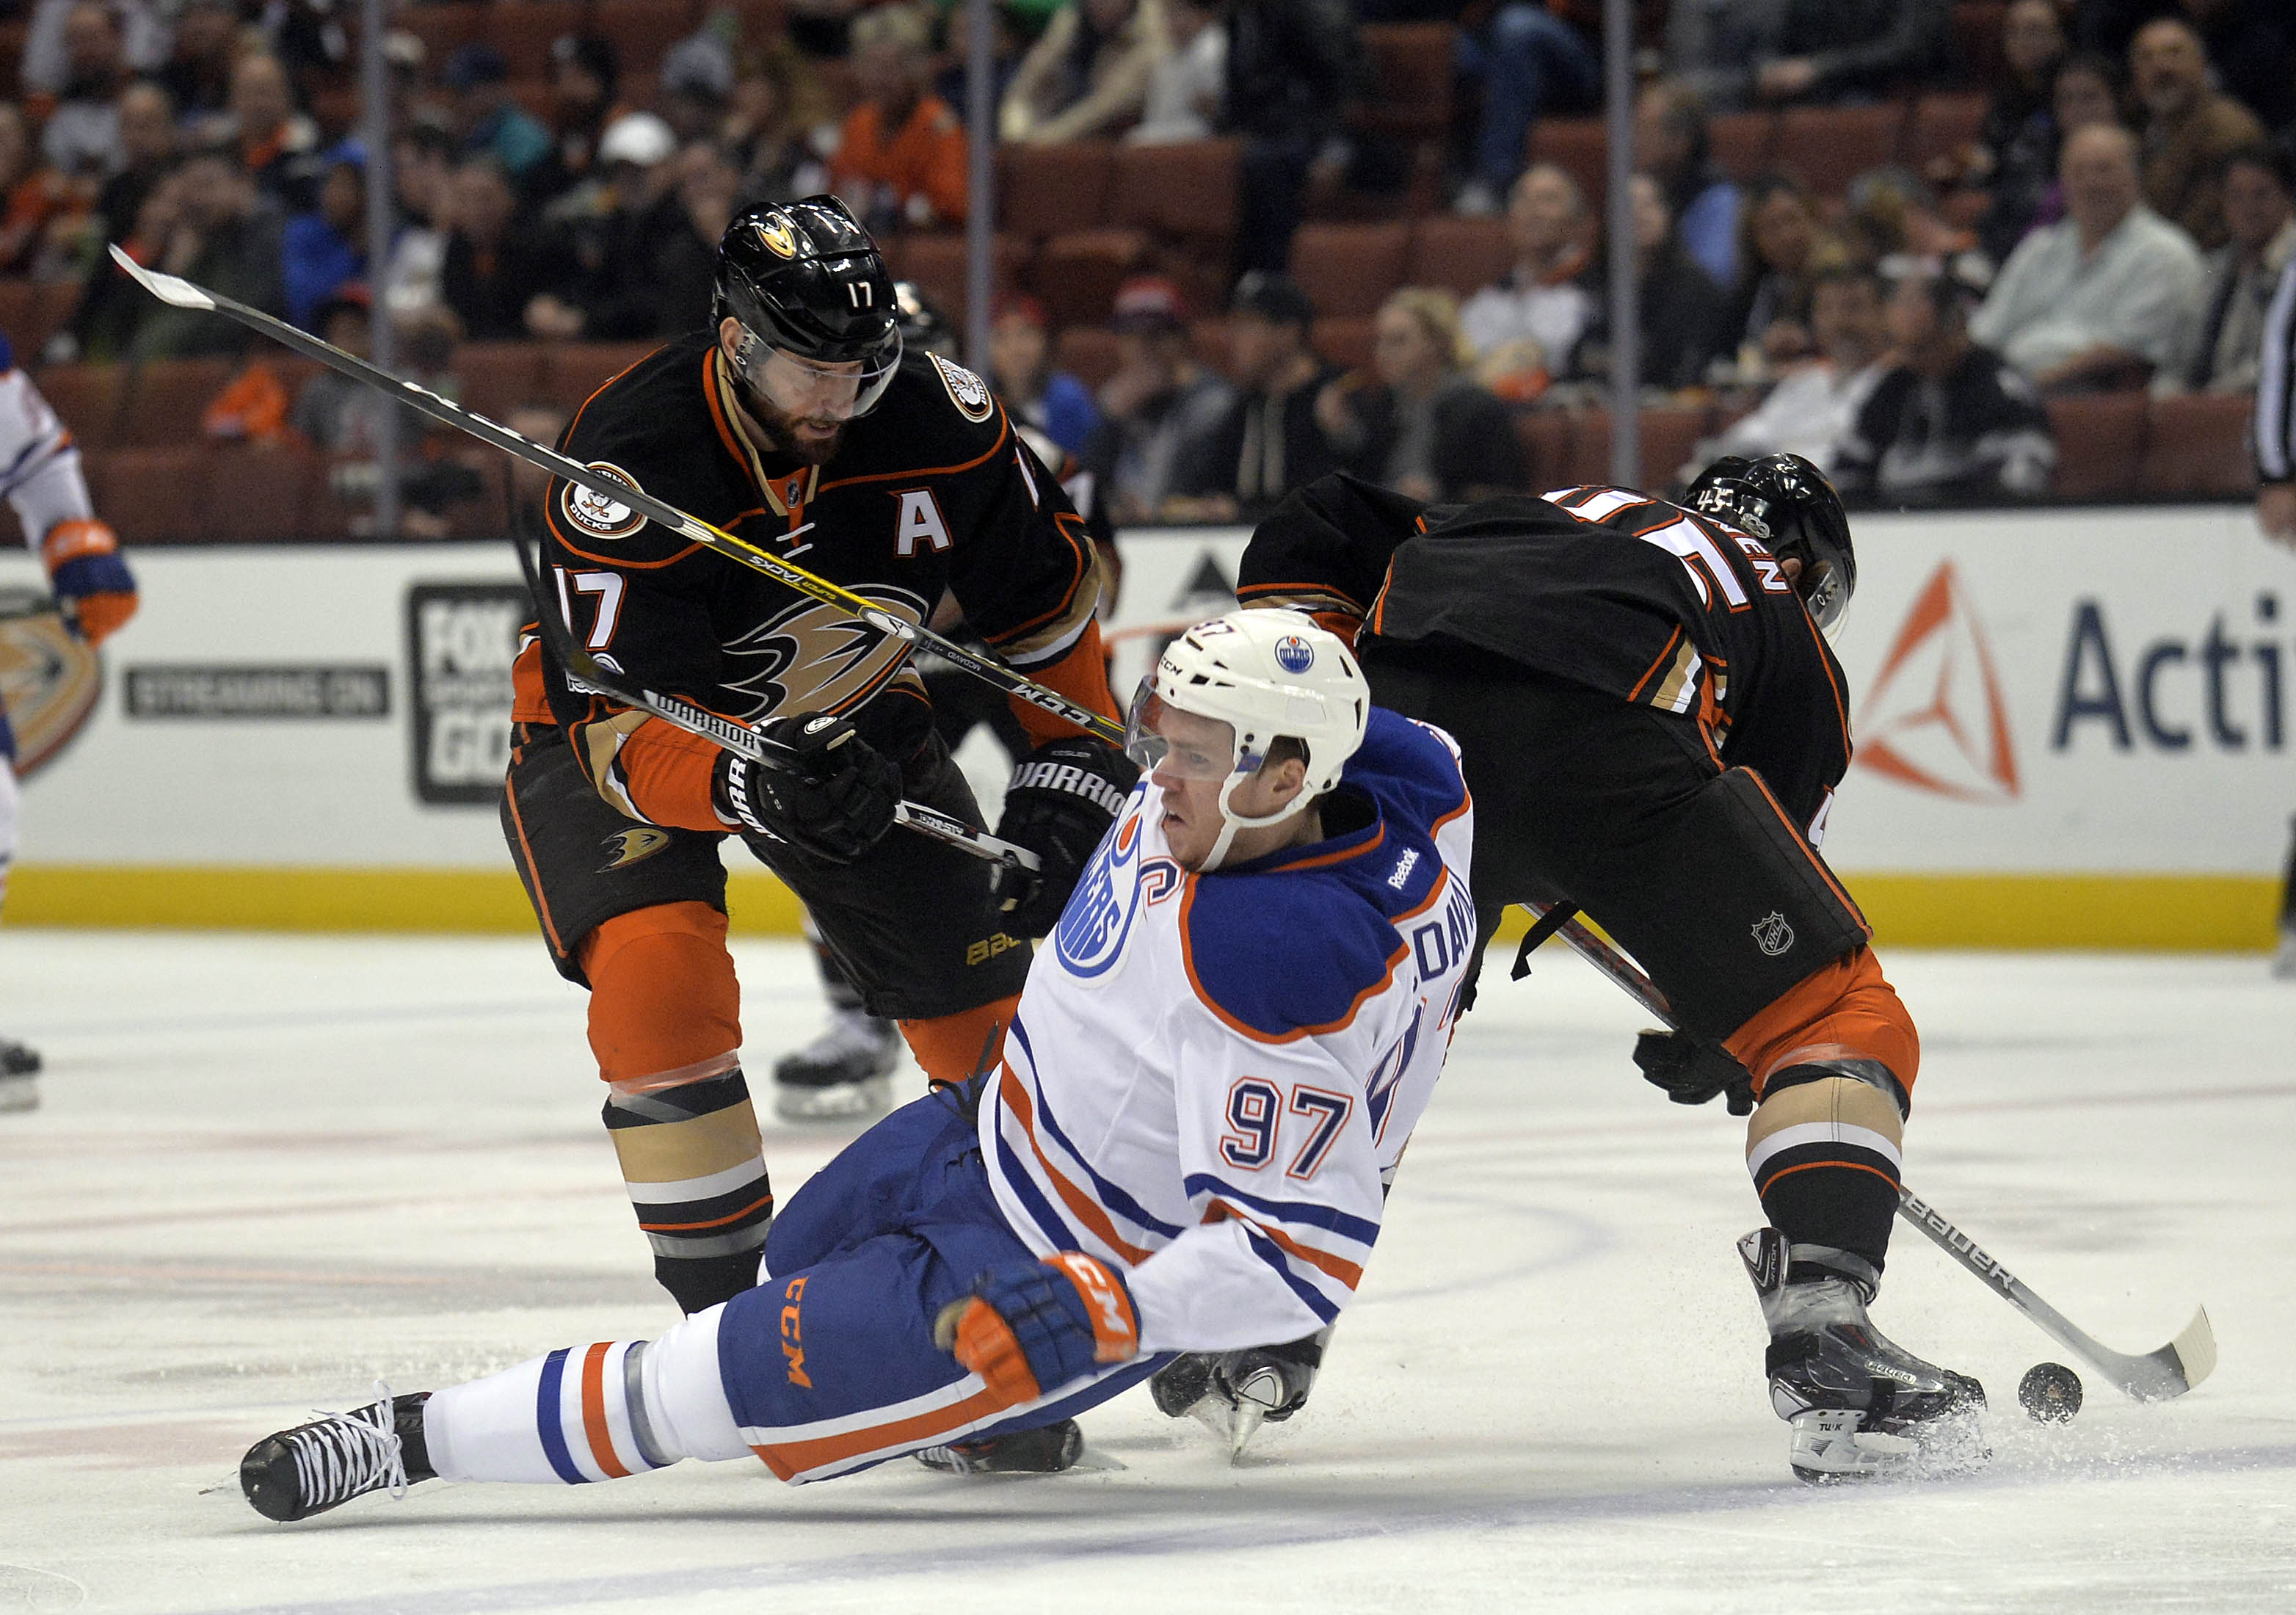 9838411-nhl-edmonton-oilers-at-anaheim-ducks